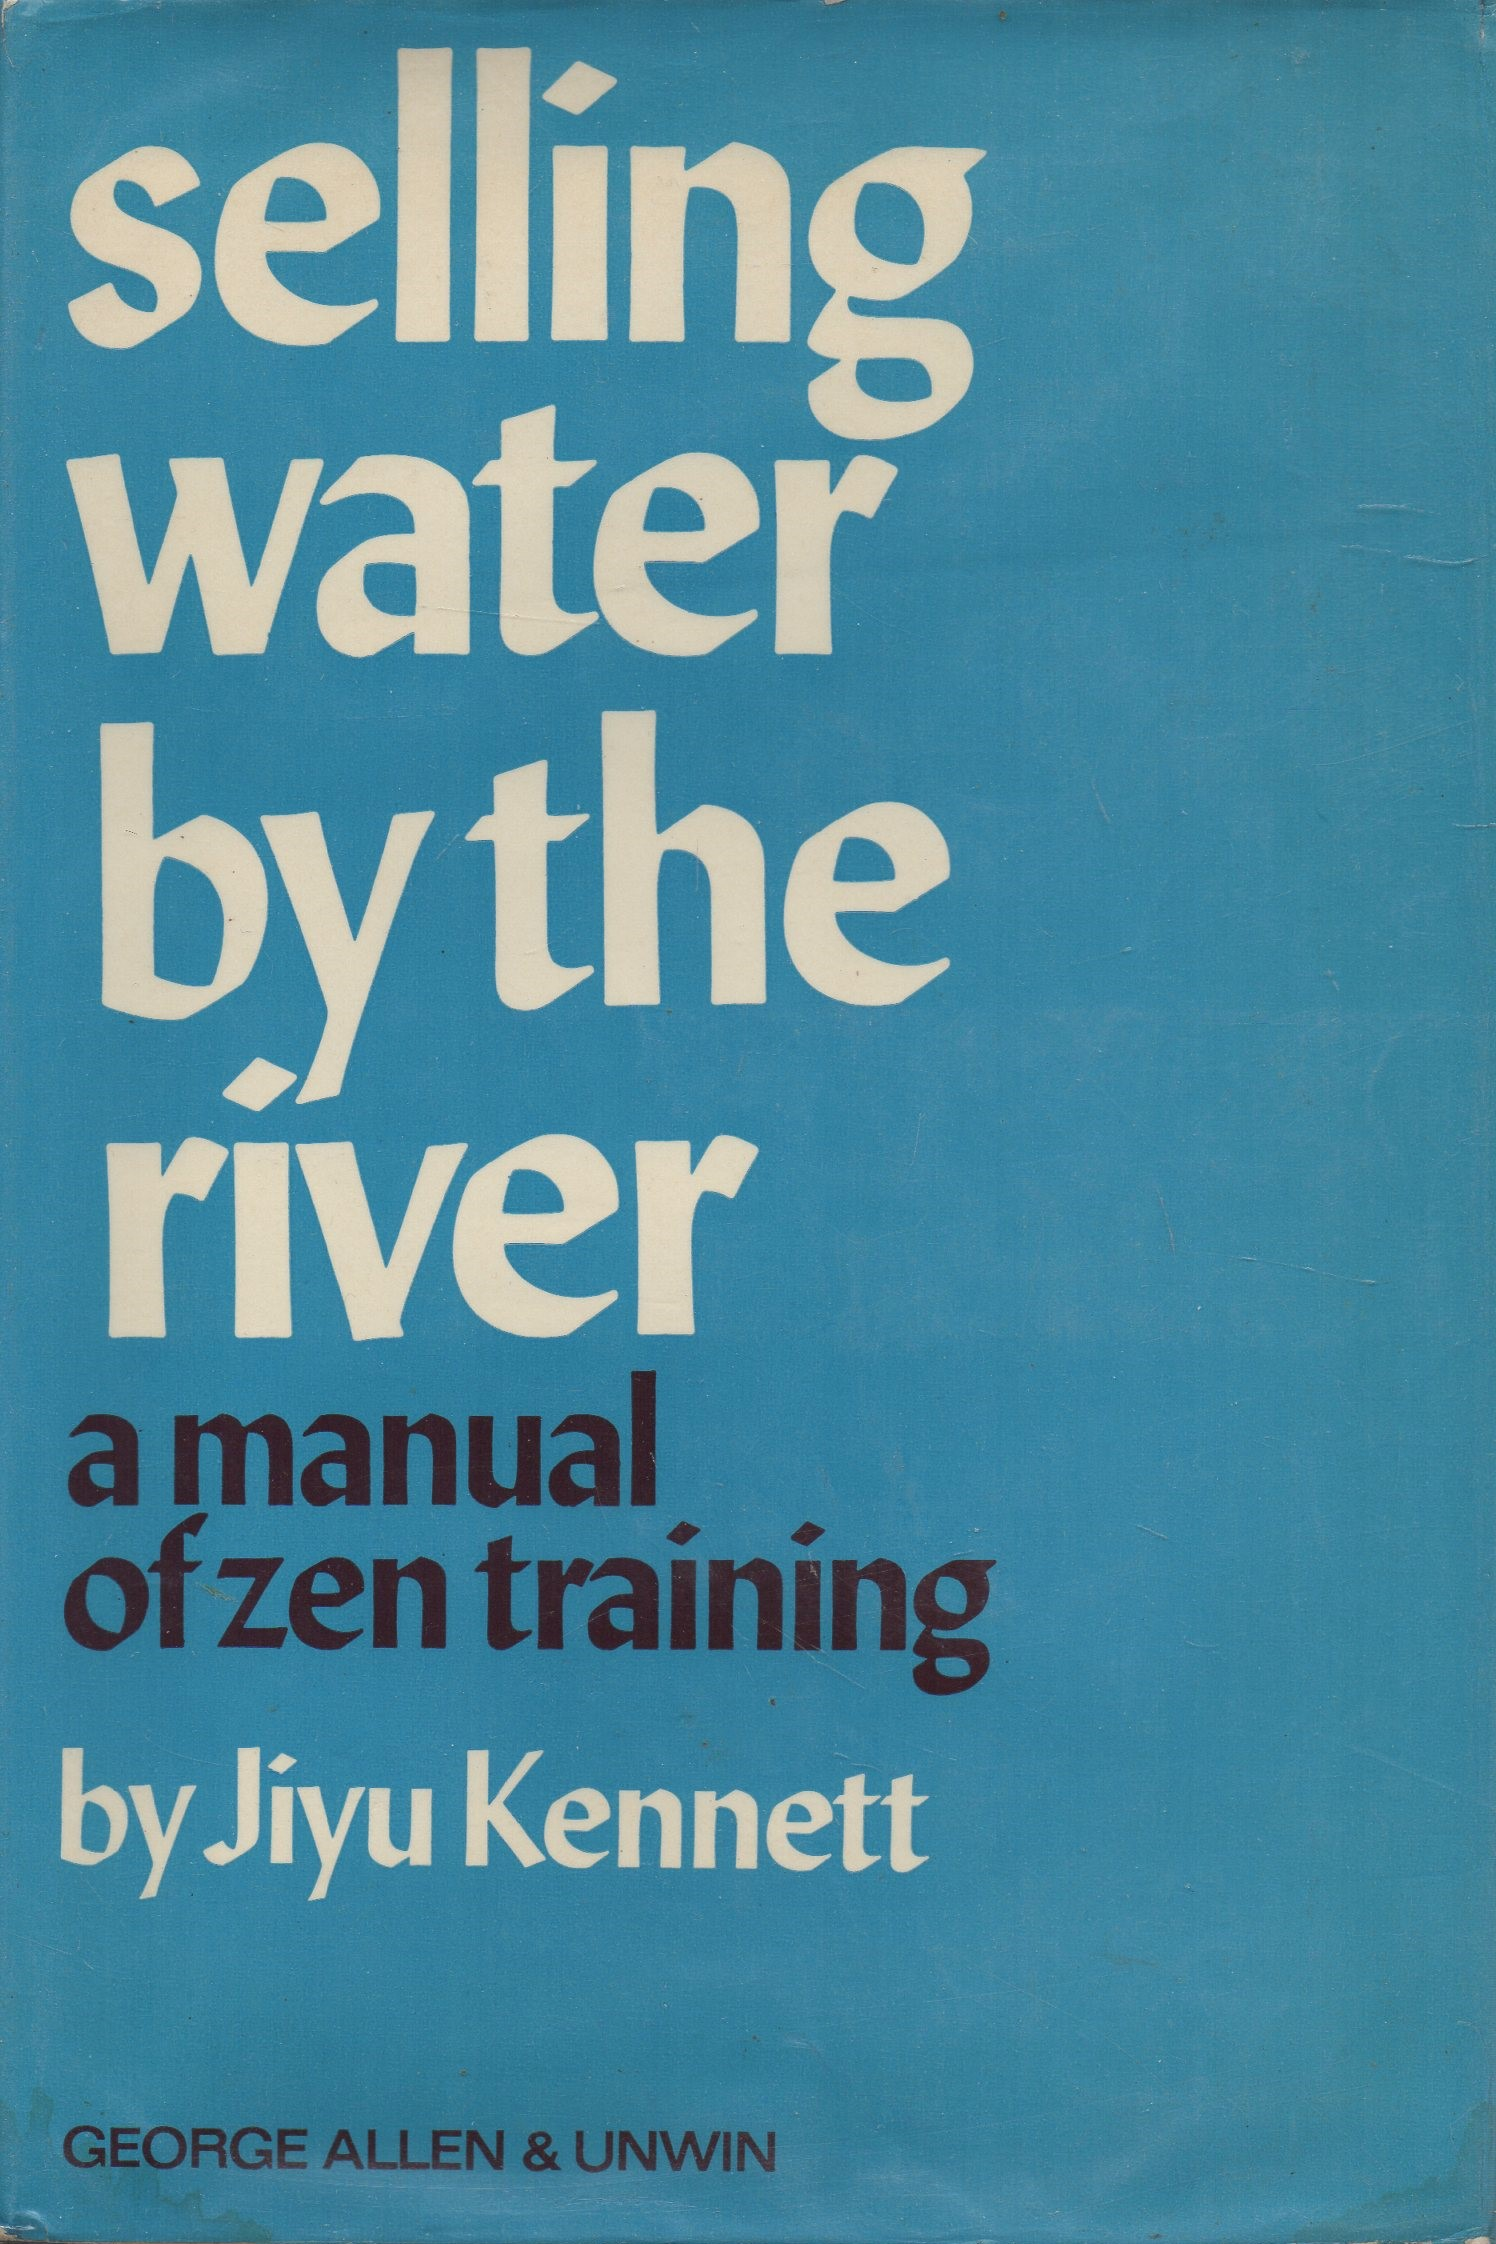 KENNETT, JIYU - Selling Water by the River  A Manual of Zen Training